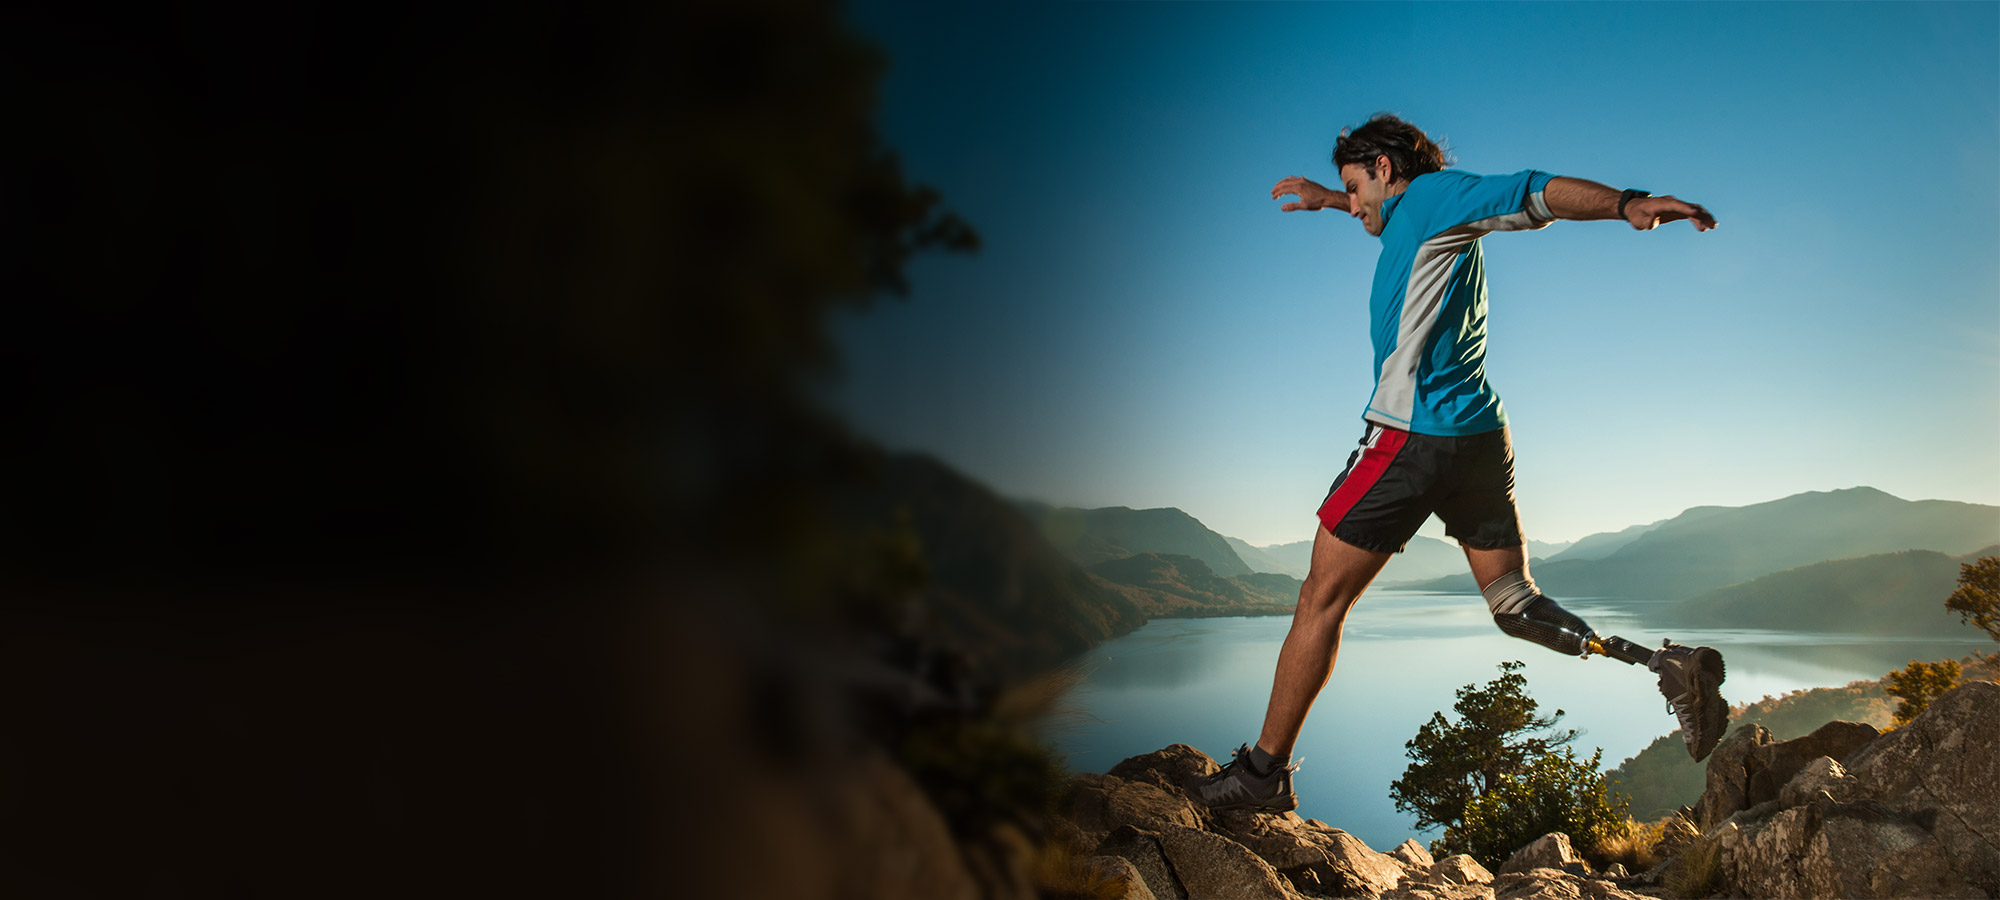 Man runing outdoors with prosthetic leg